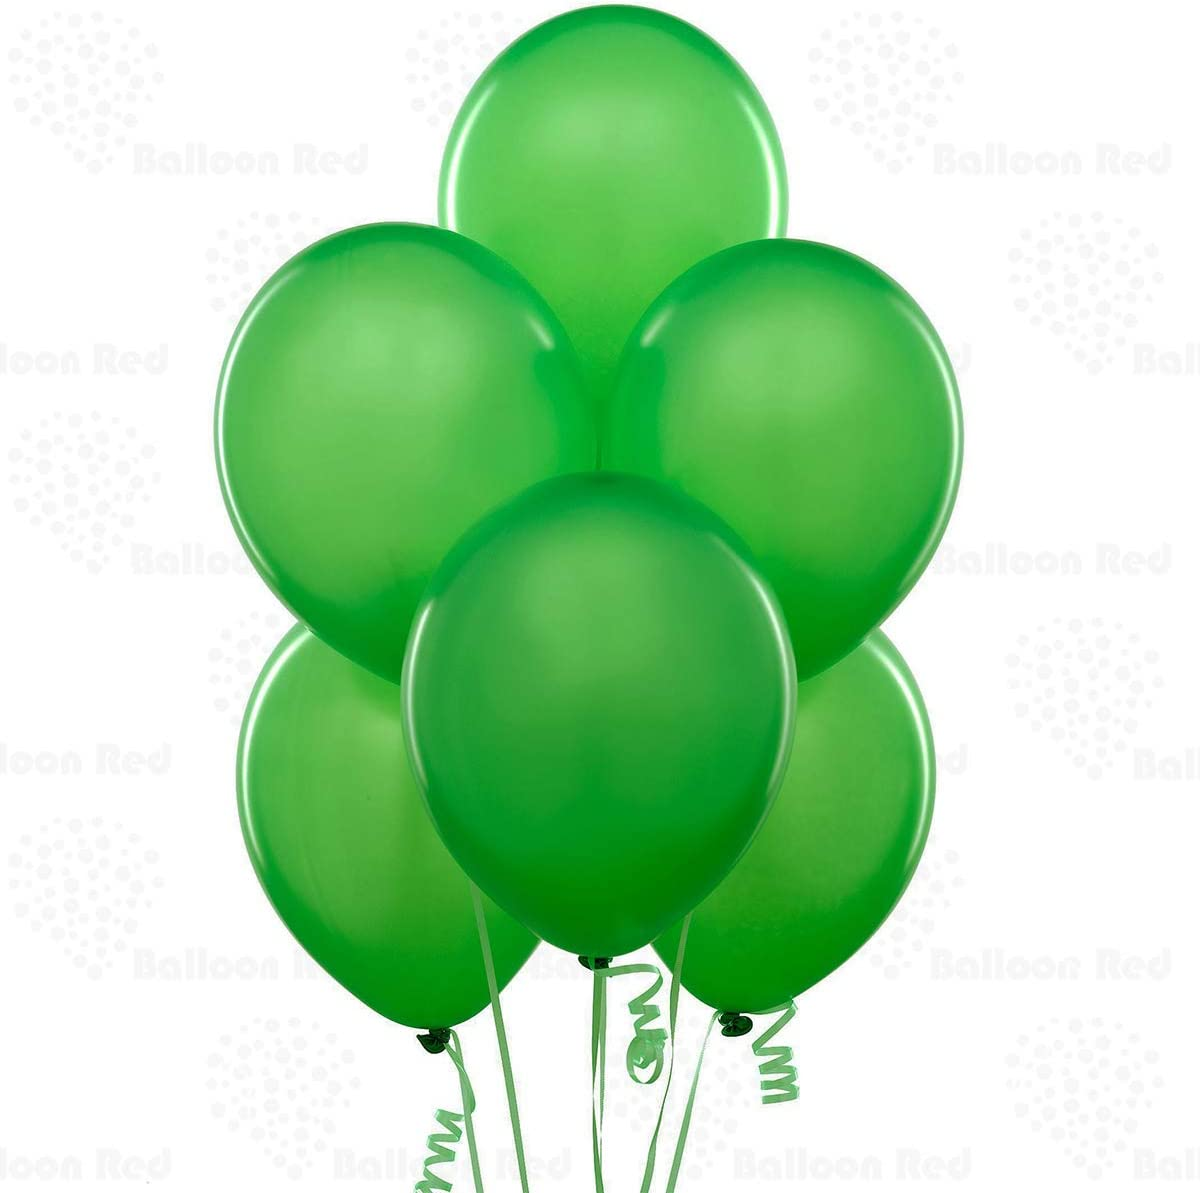 Apple Green 12 Inch Latex Balloons 100 Pack Thickened Extra Strong for Baby Shower Garland Wedding Photo Booth Birthday Party Supplies Arch Decoration Engagement Anniversary Christmas Festival